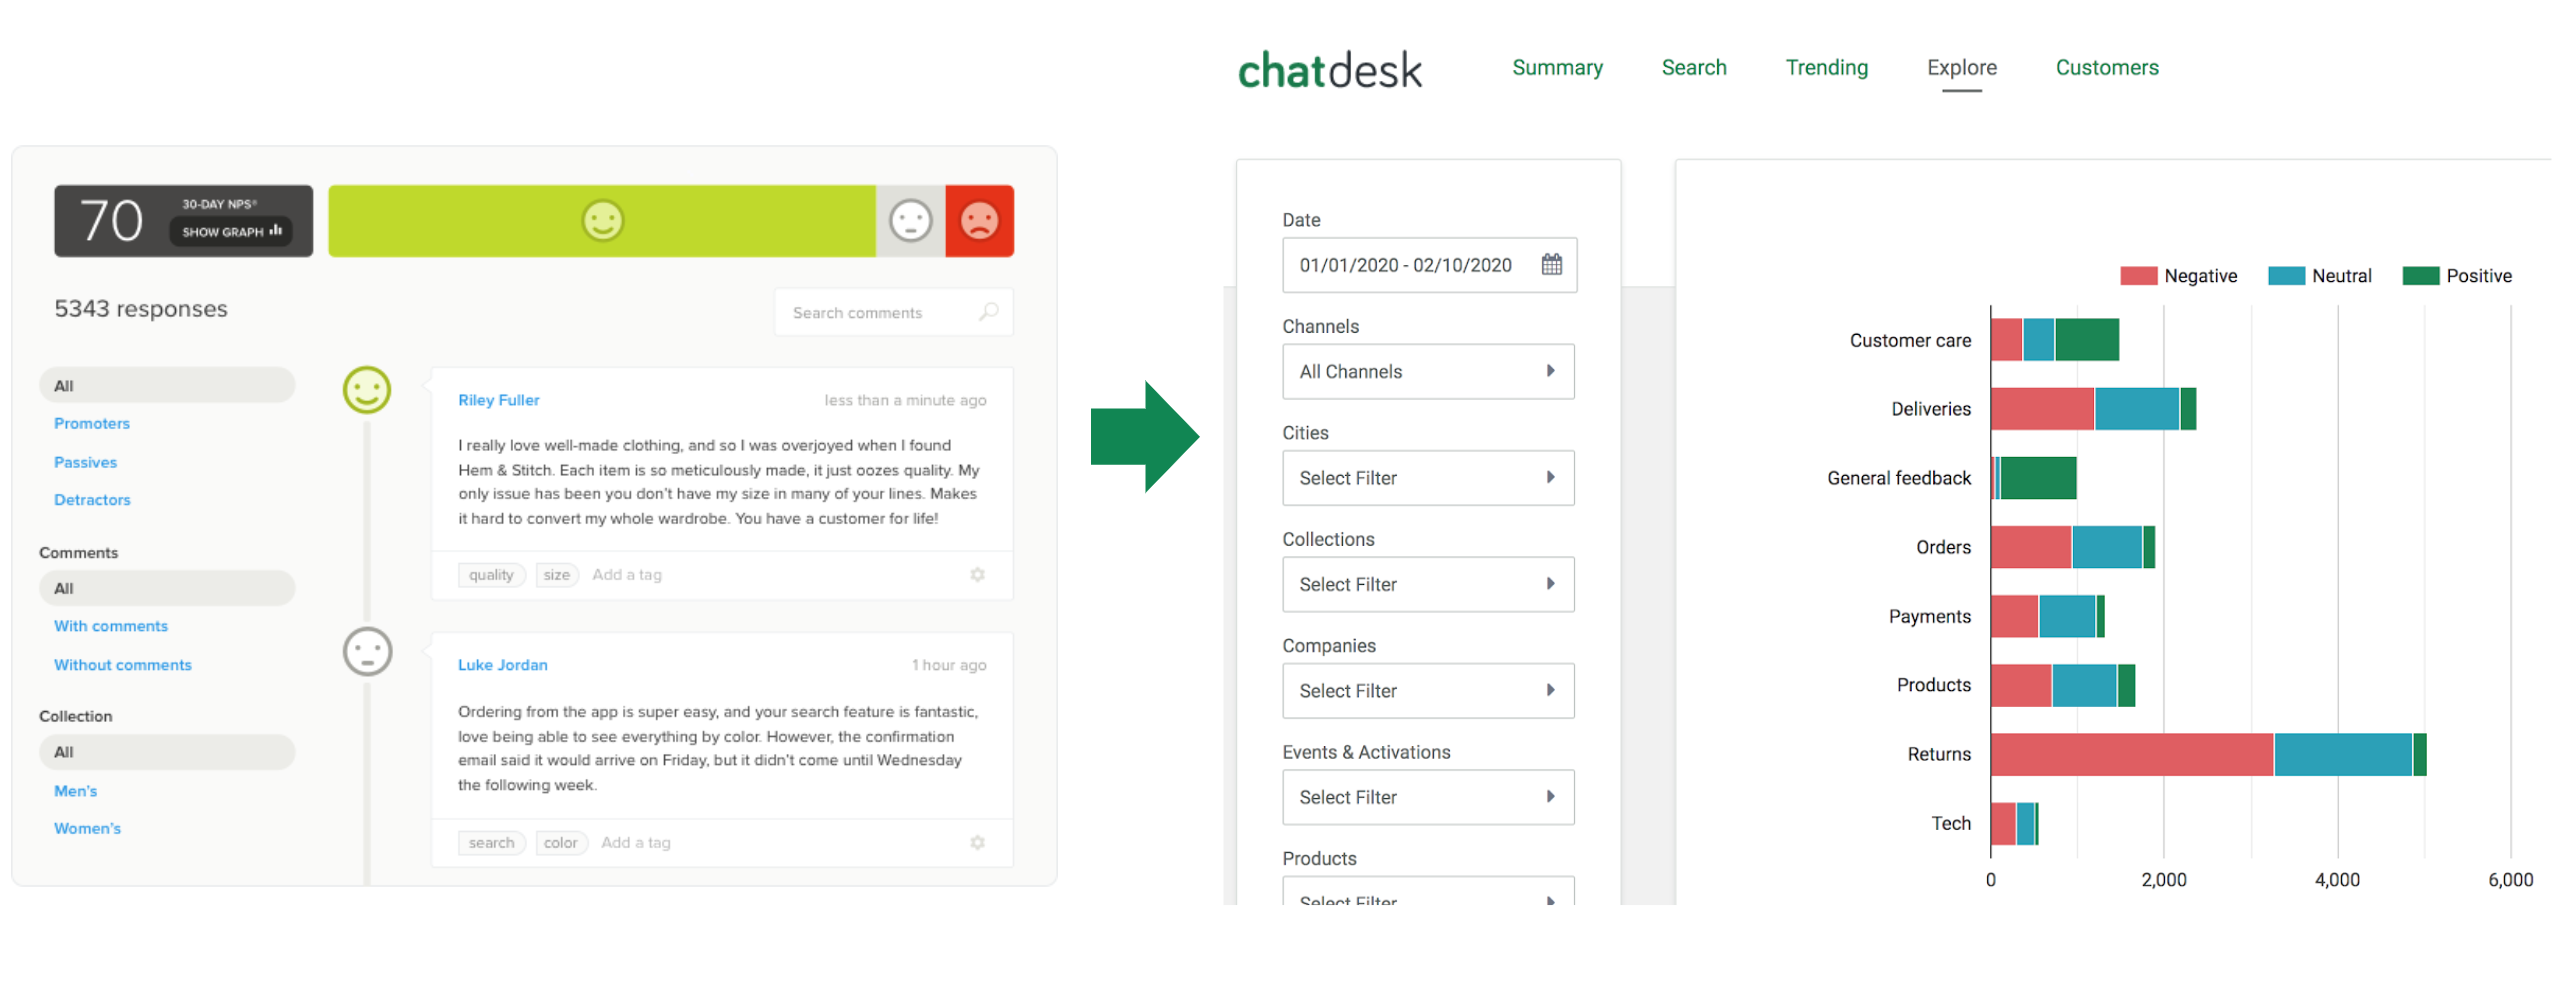 Customer feedback from Delighted surveys can be automatically analyzed in Chatdesk Trends